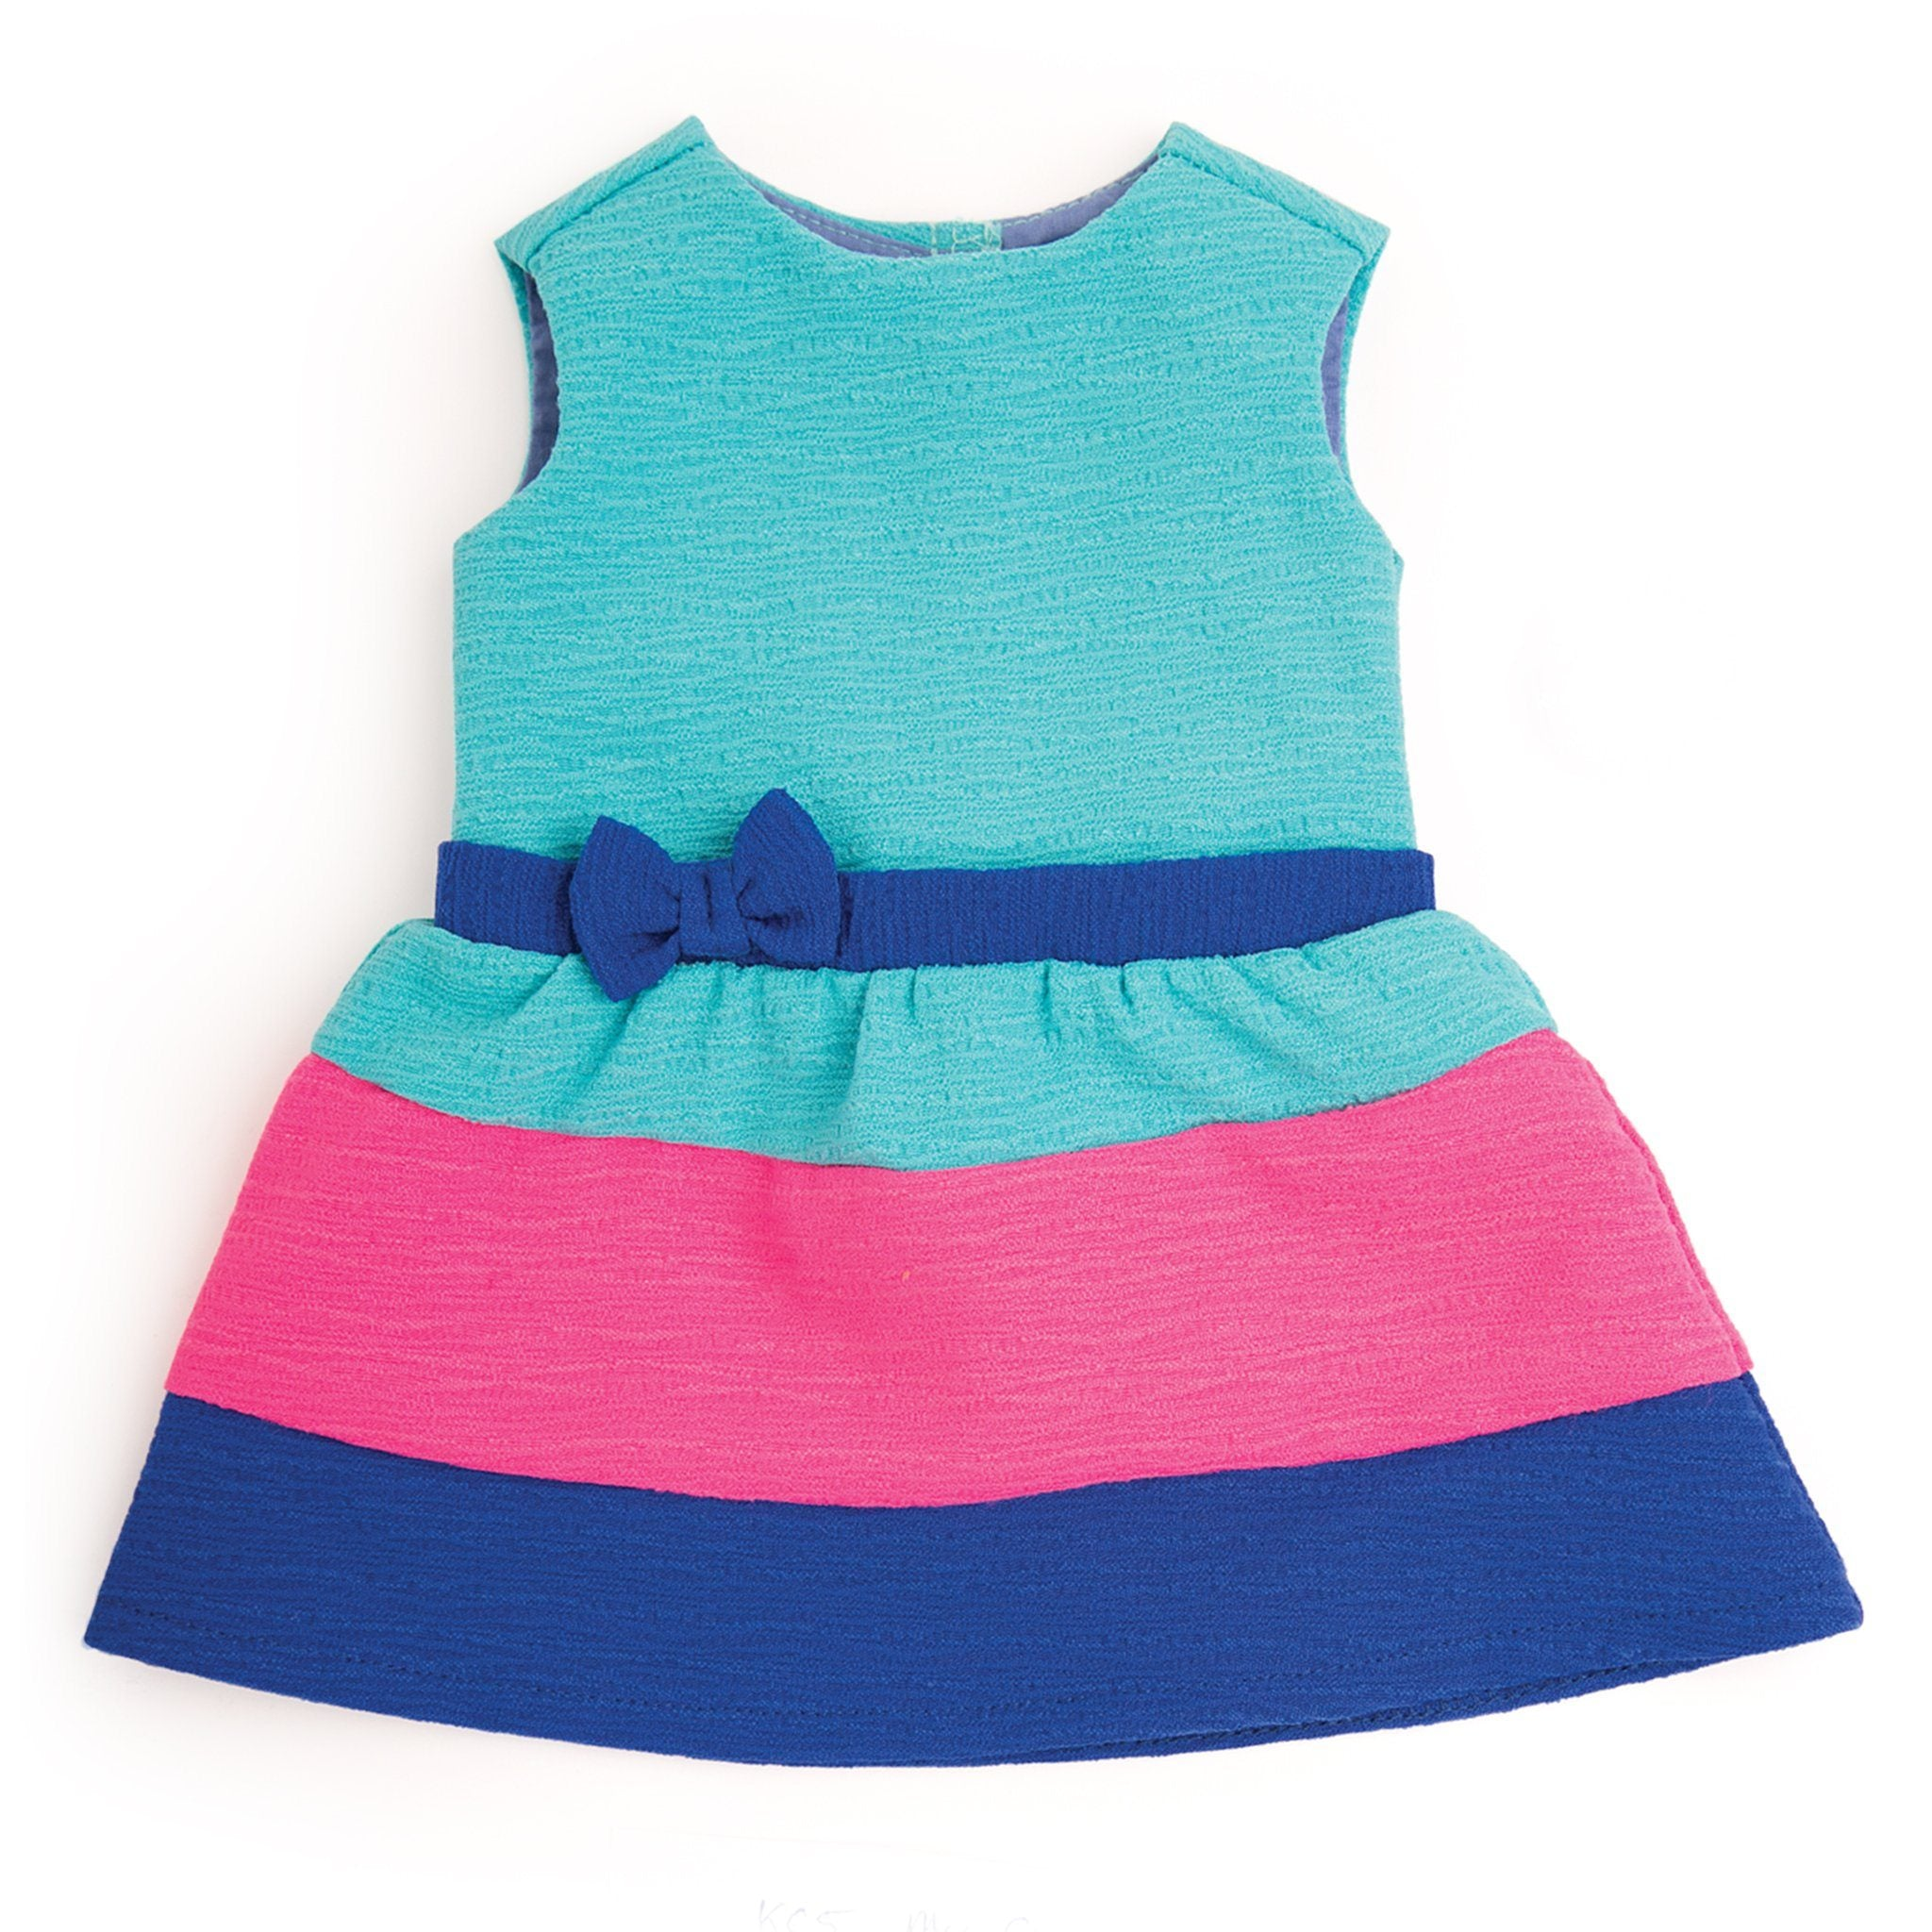 My cup of tea bright colourblock teal, royal blue and pink dress fits all 18 inch dolls.